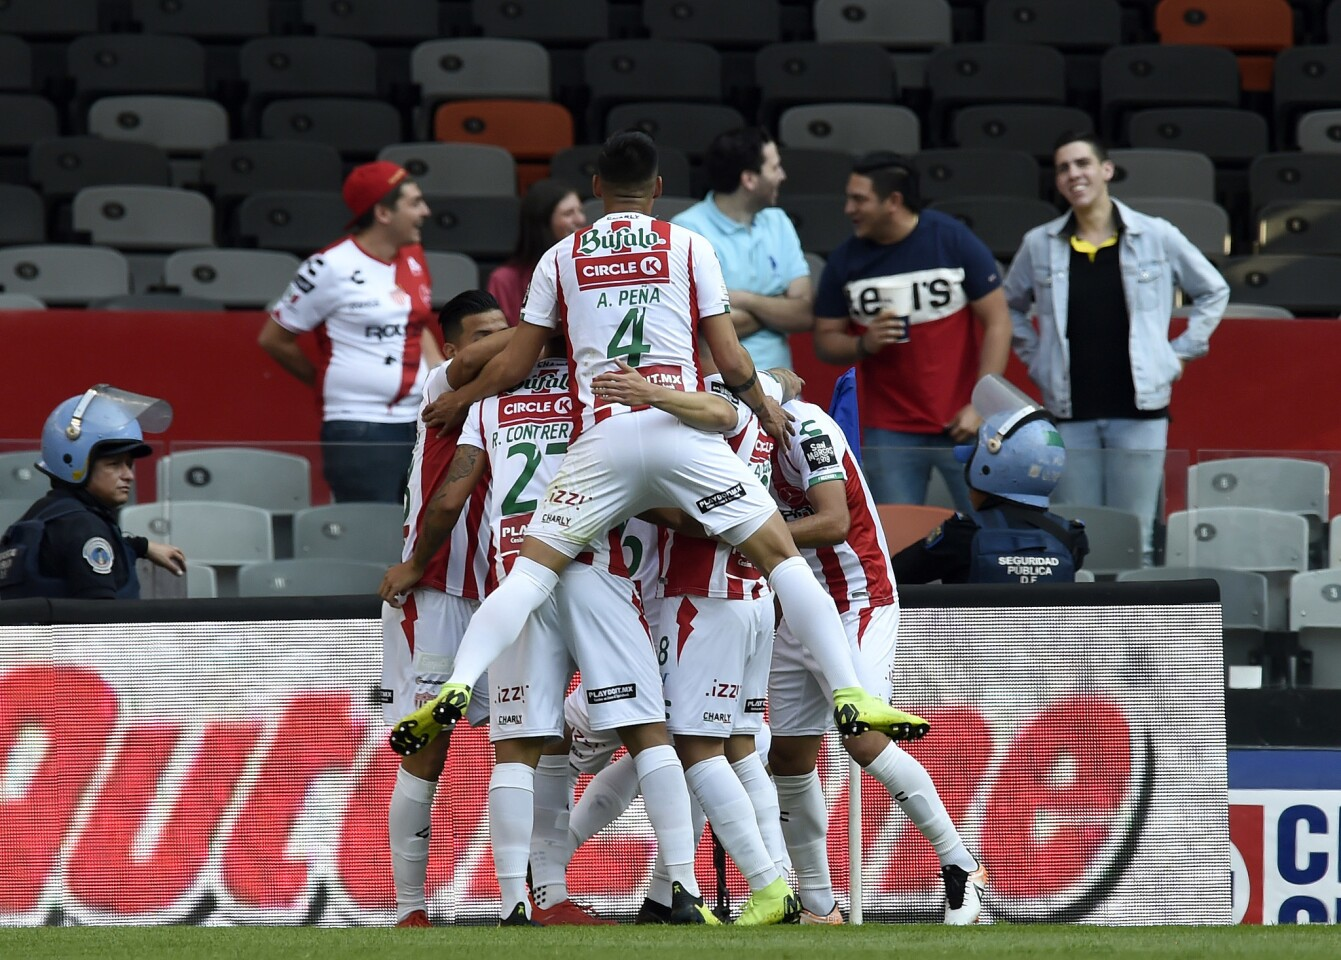 Necaxa players celebrate a goal against Cruz Azul during a Mexican Apertura tournament football match at the Azteca stadium in Mexico City on March 2, 2019. (Photo by ALFREDO ESTRELLA / AFP)ALFREDO ESTRELLA/AFP/Getty Images ** OUTS - ELSENT, FPG, CM - OUTS * NM, PH, VA if sourced by CT, LA or MoD **